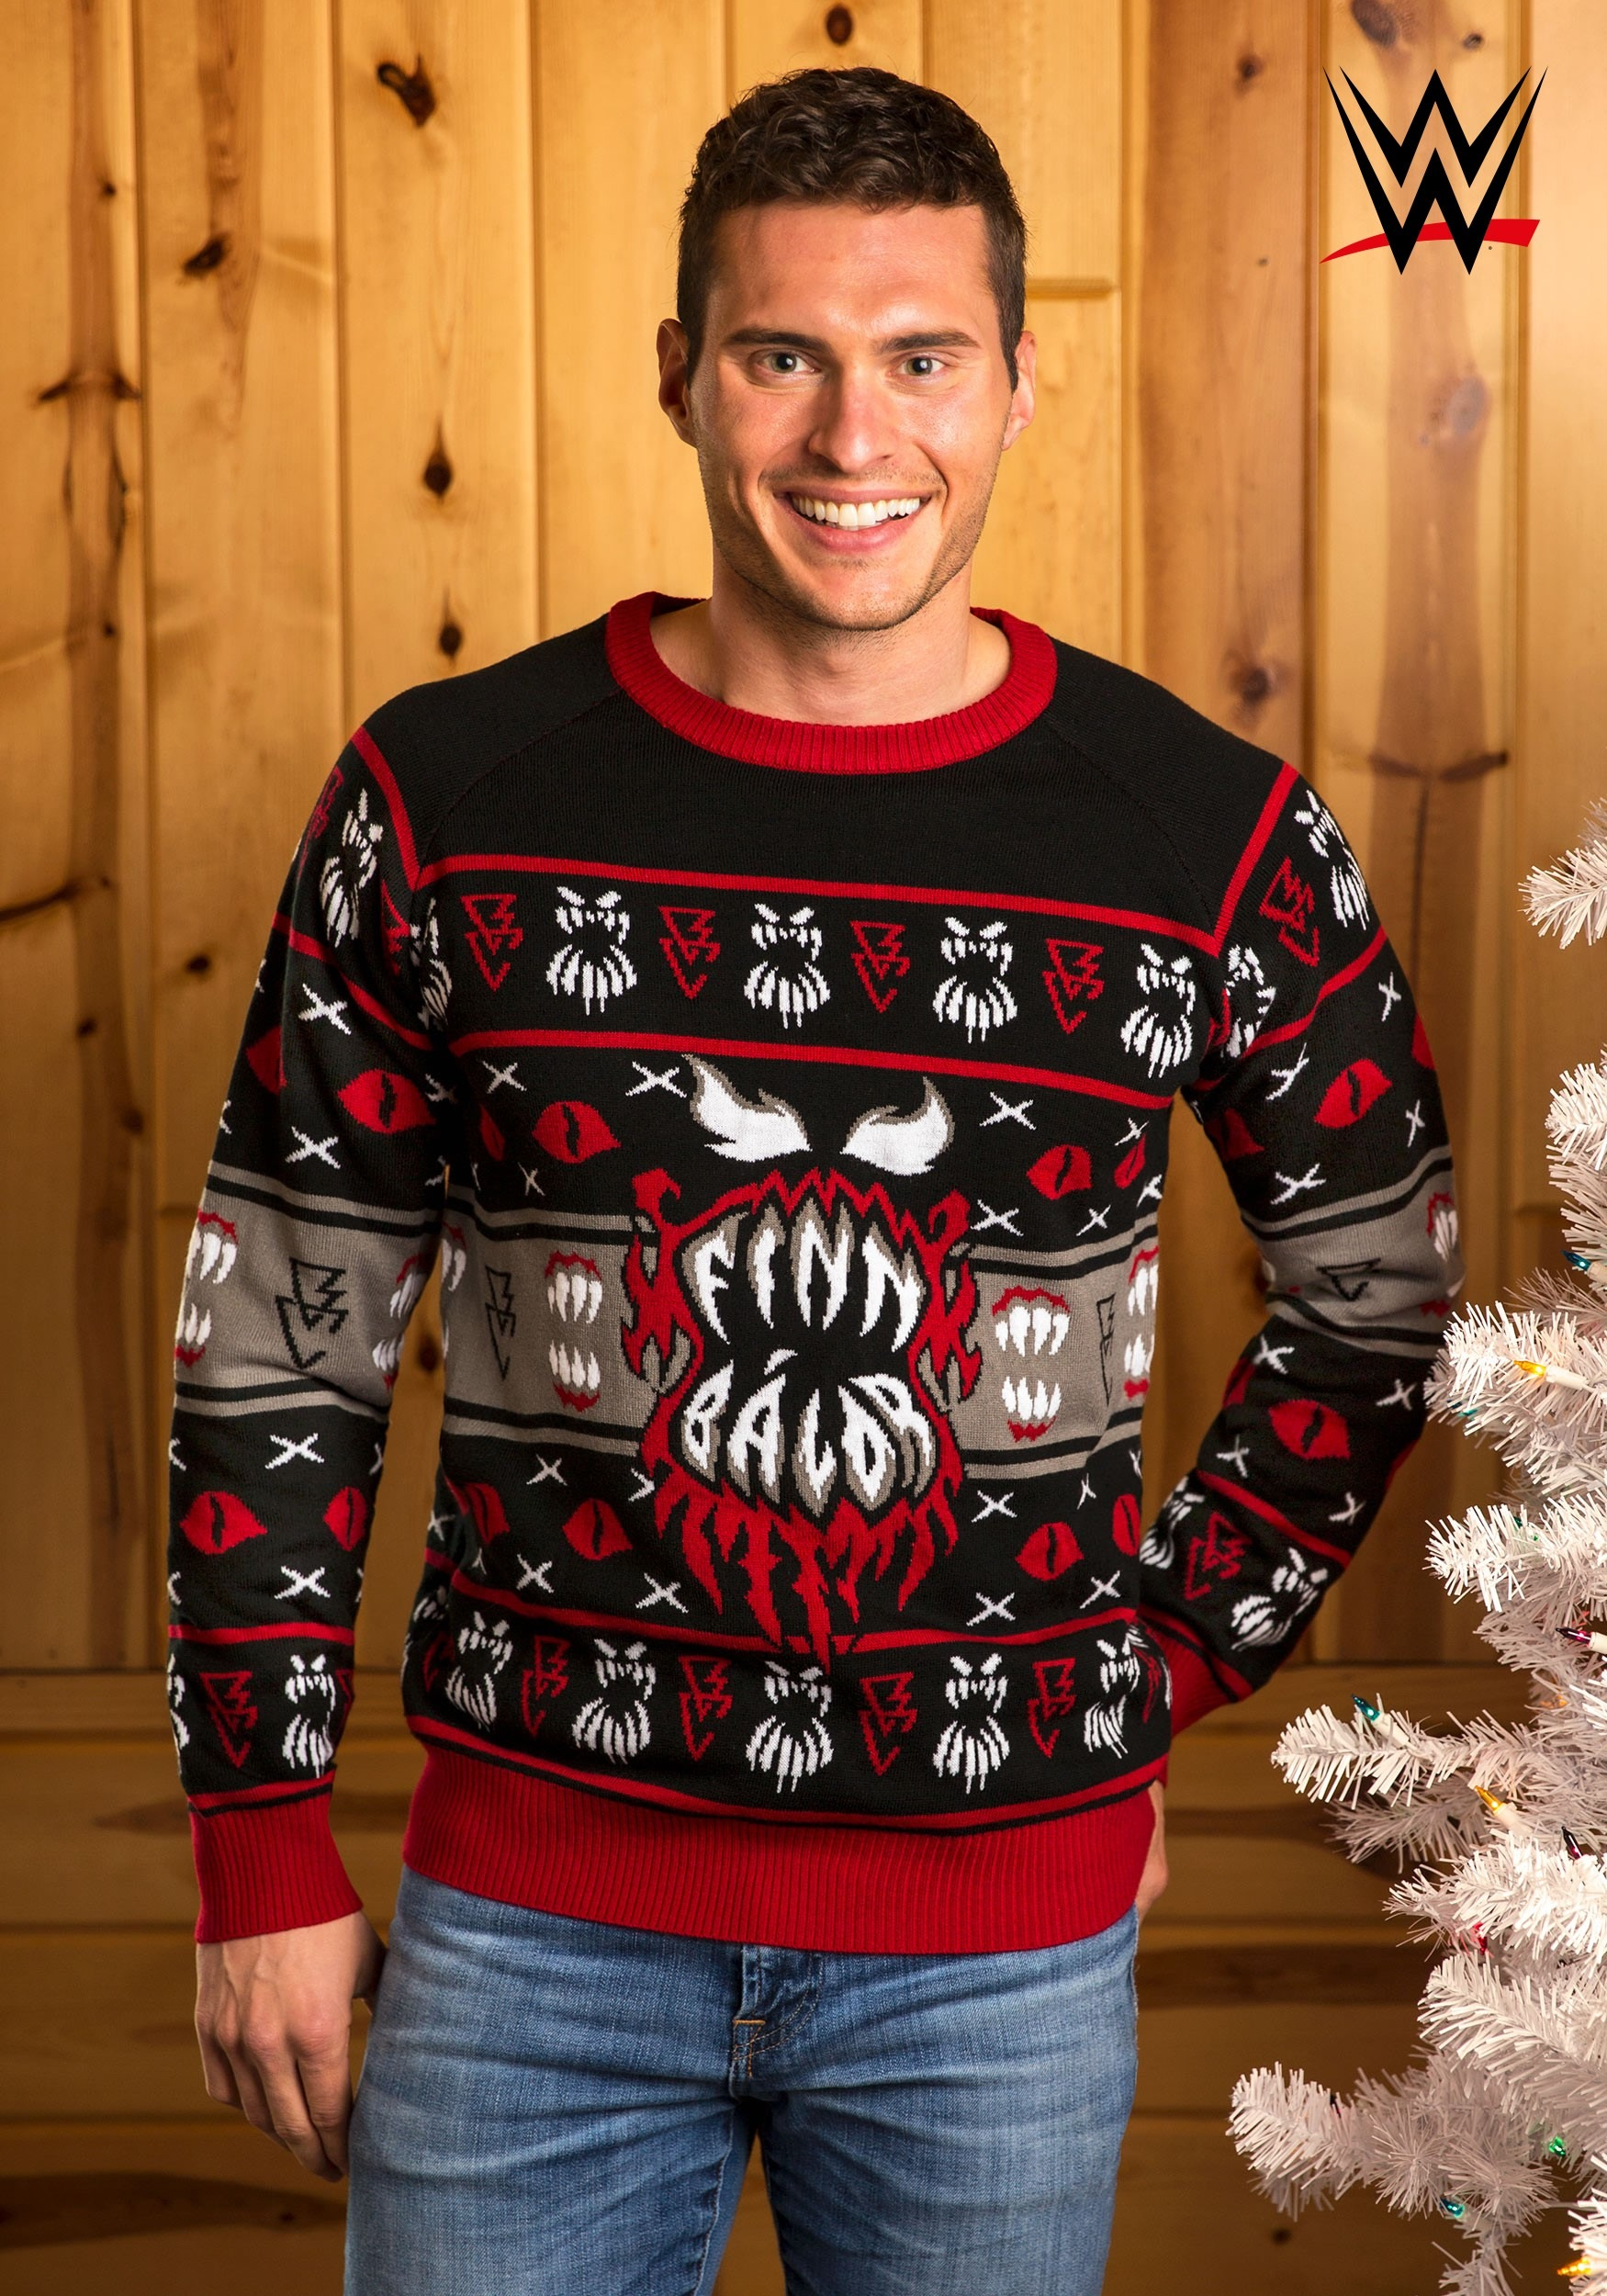 Details about  /Hanes Men/'s Ugly Christmas Sweatshirt Gift to all Women Pullover Sweater Large